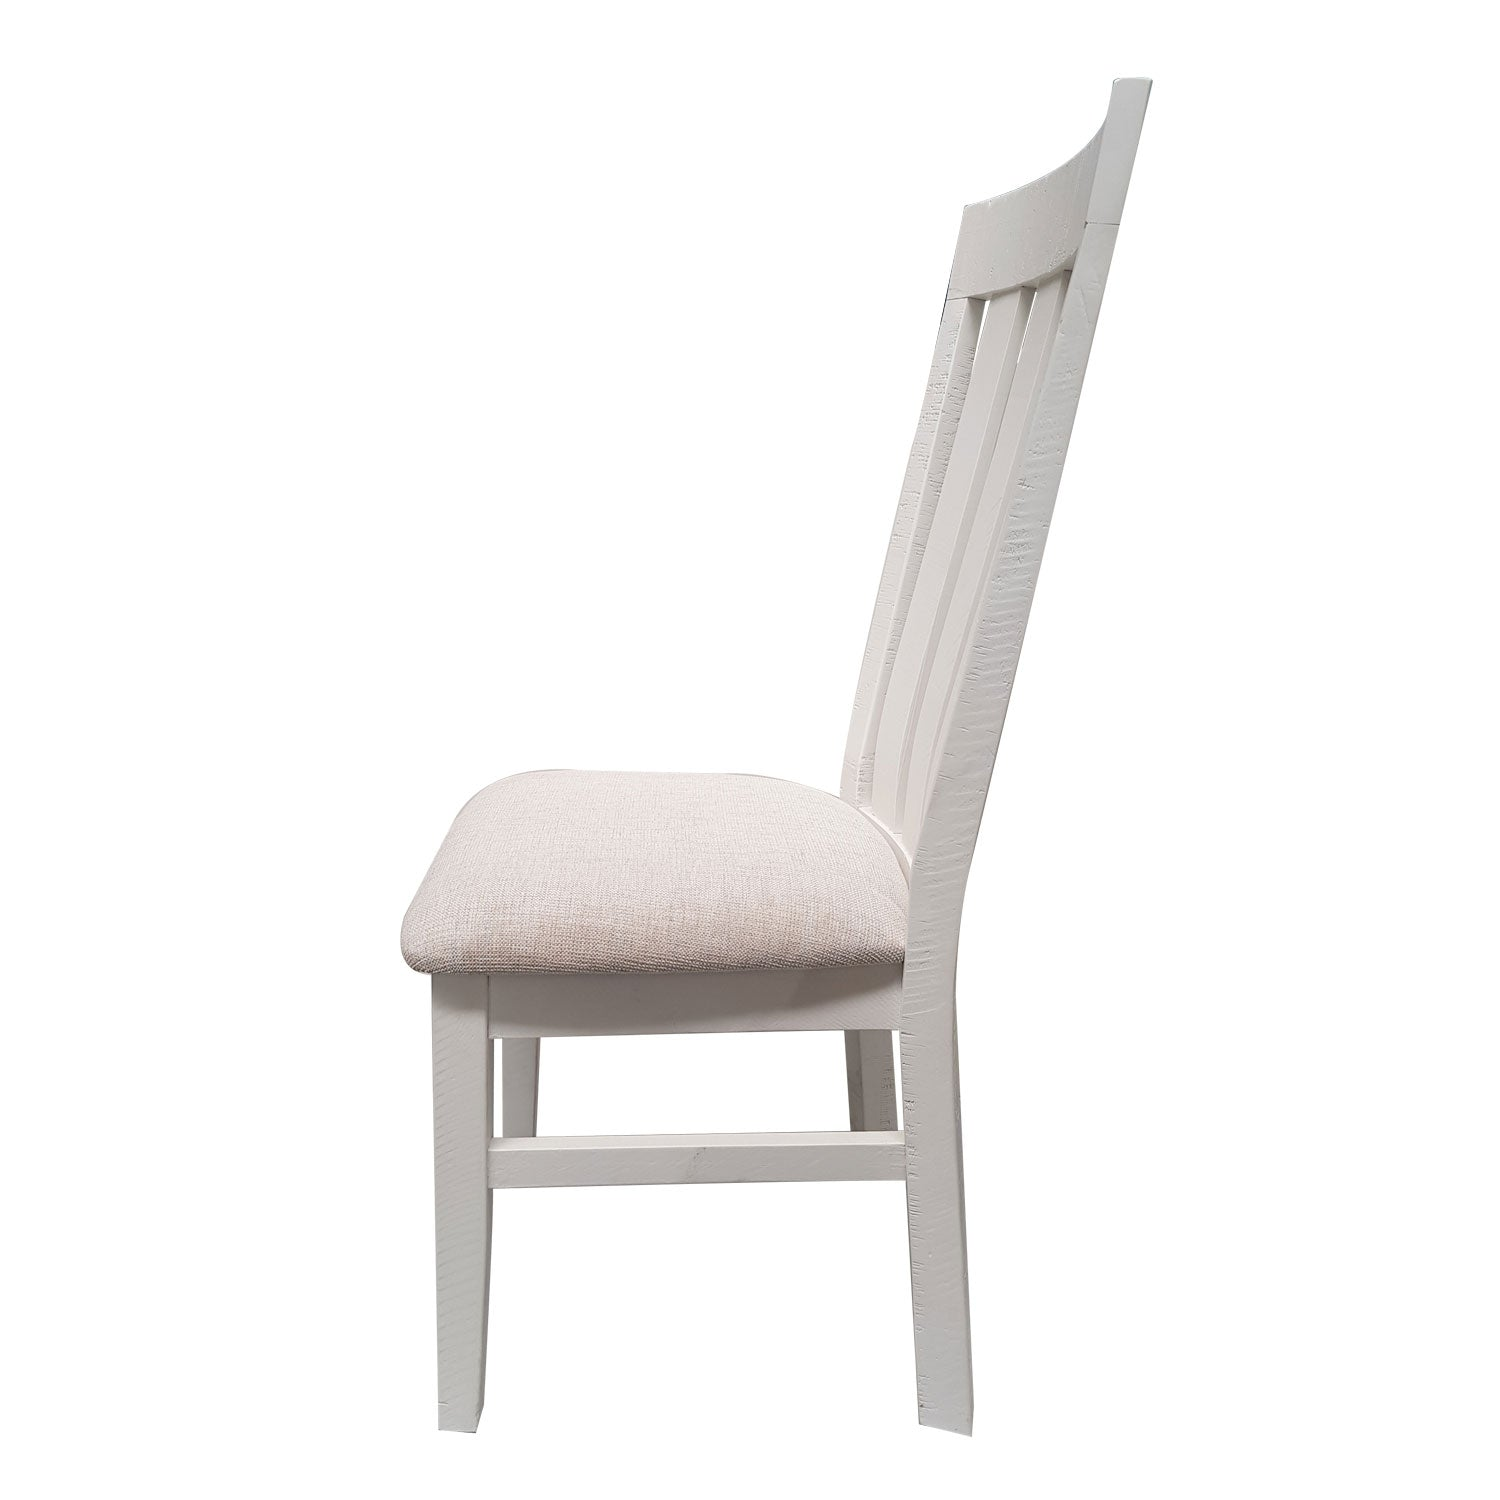 Harlow Dining Chair - Upholstered Seat Pad - The Furniture Store & The Bed Shop